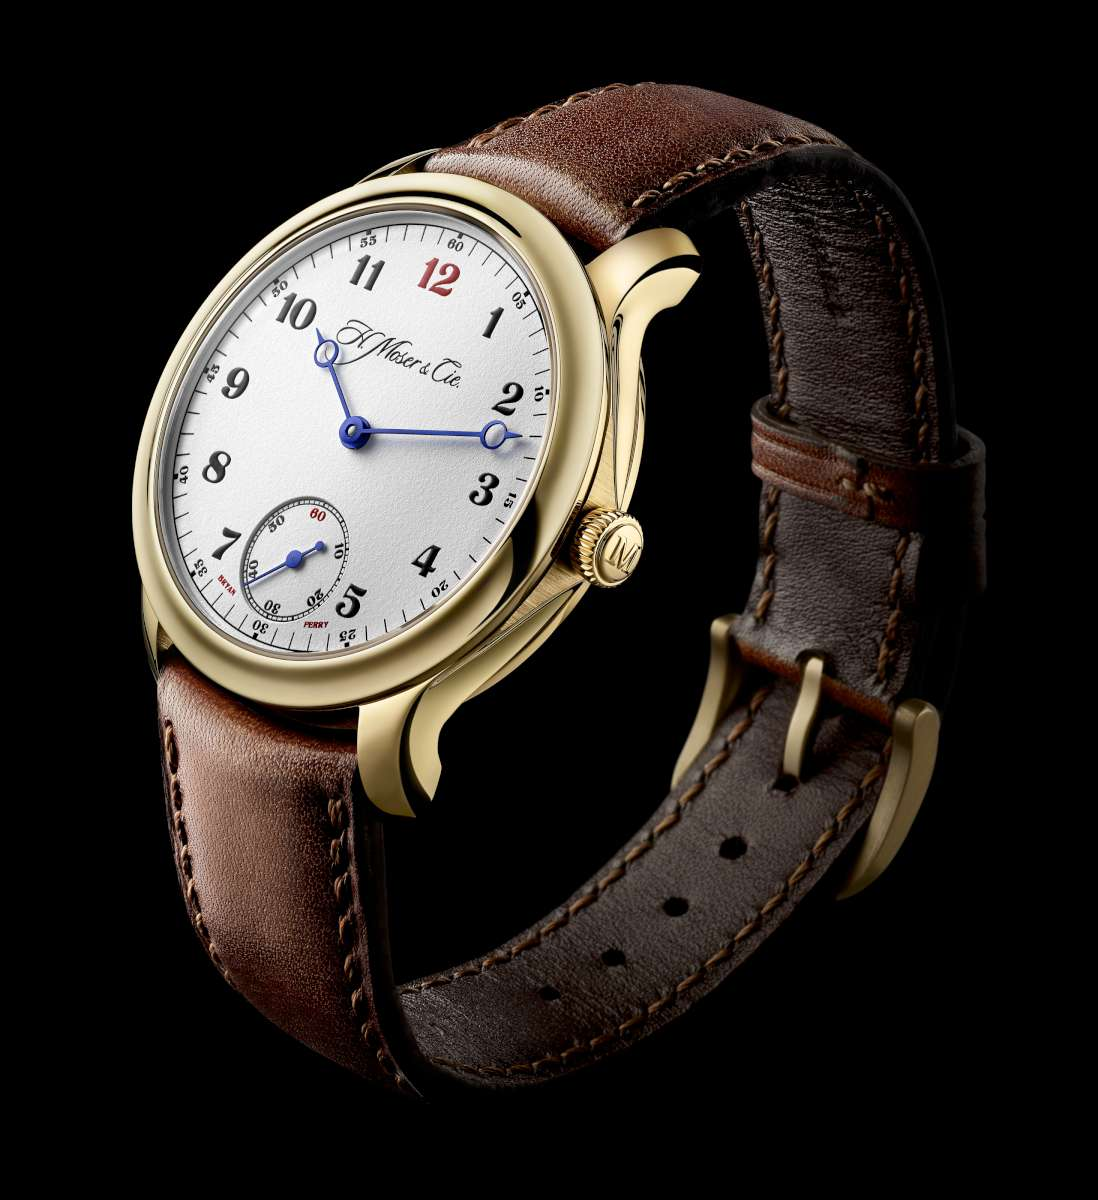 H. Moser & Cie Endeavour Small Seconds Bryan Ferry